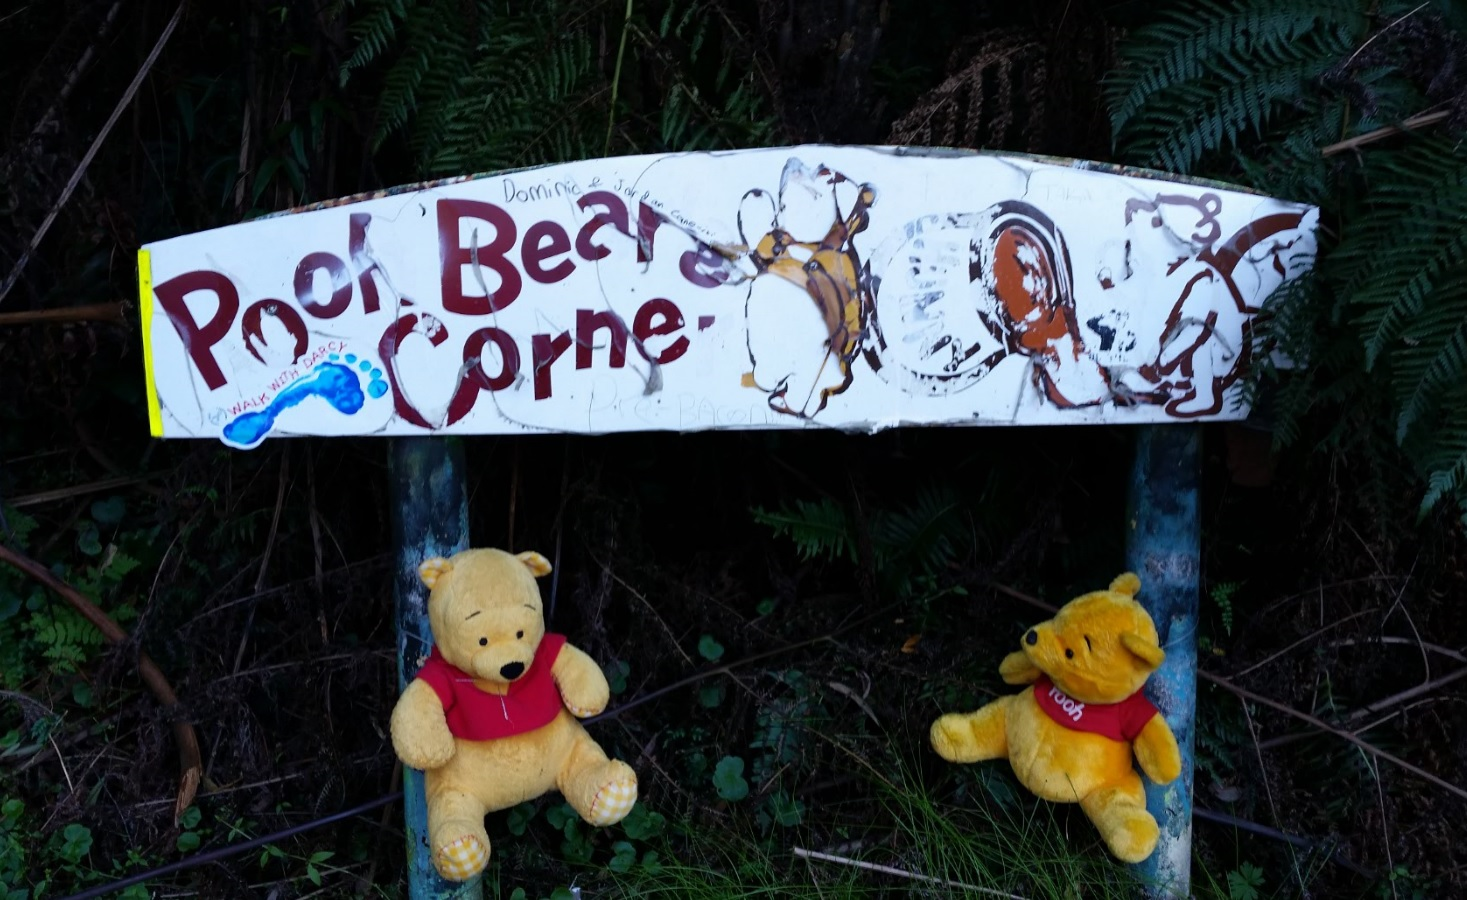 Pooh Bear Corner sign, Australia (May 2016)